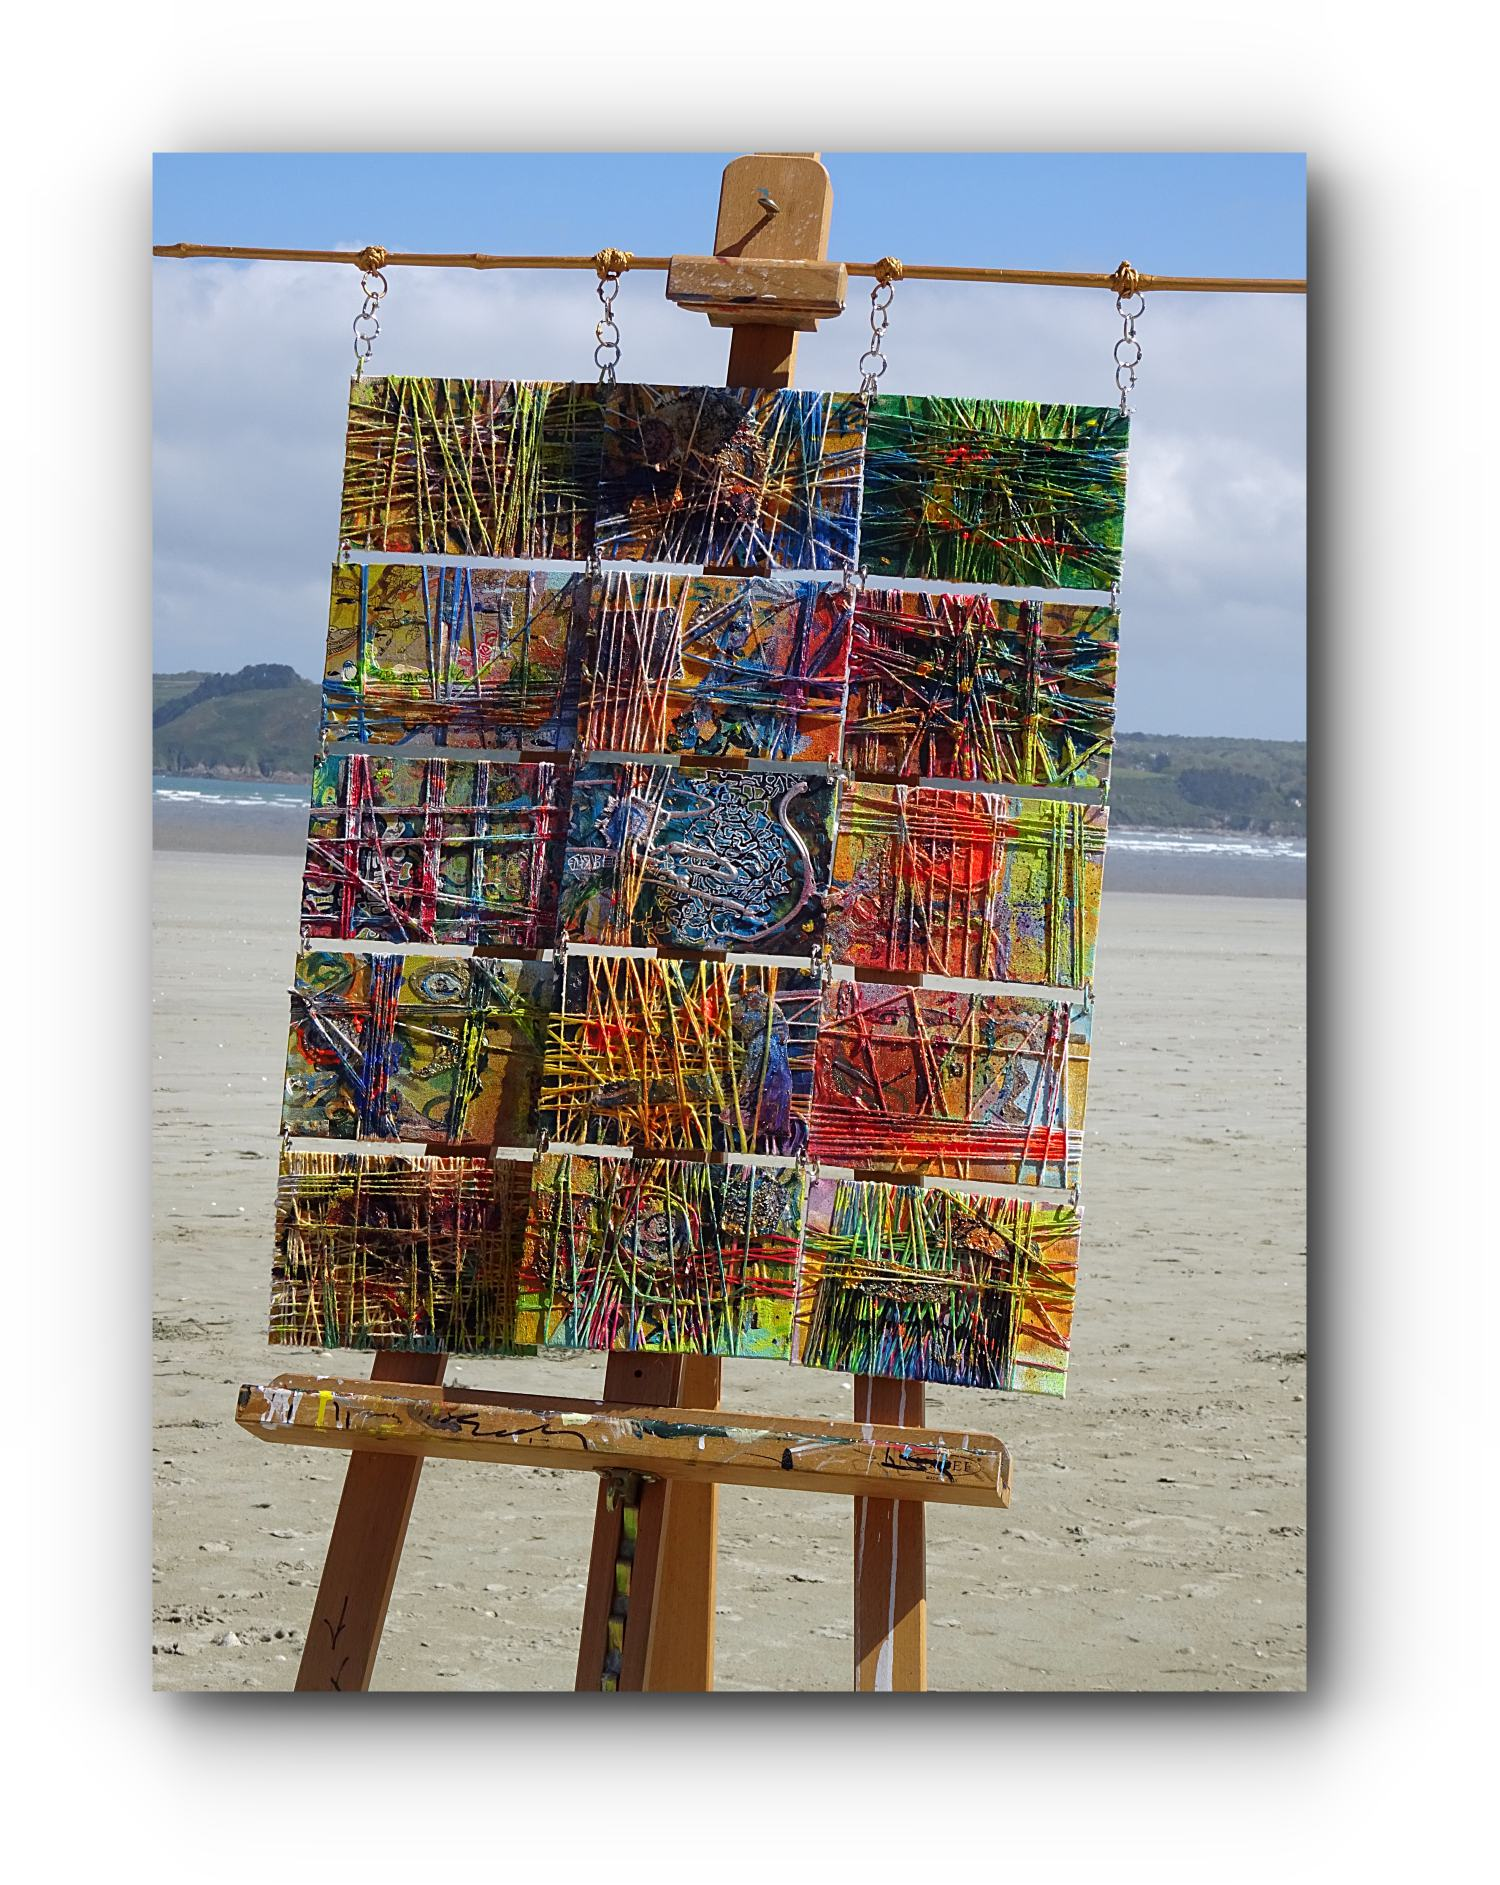 painting-string-theory-72-seaside-artists-ingress-vortices.jpg